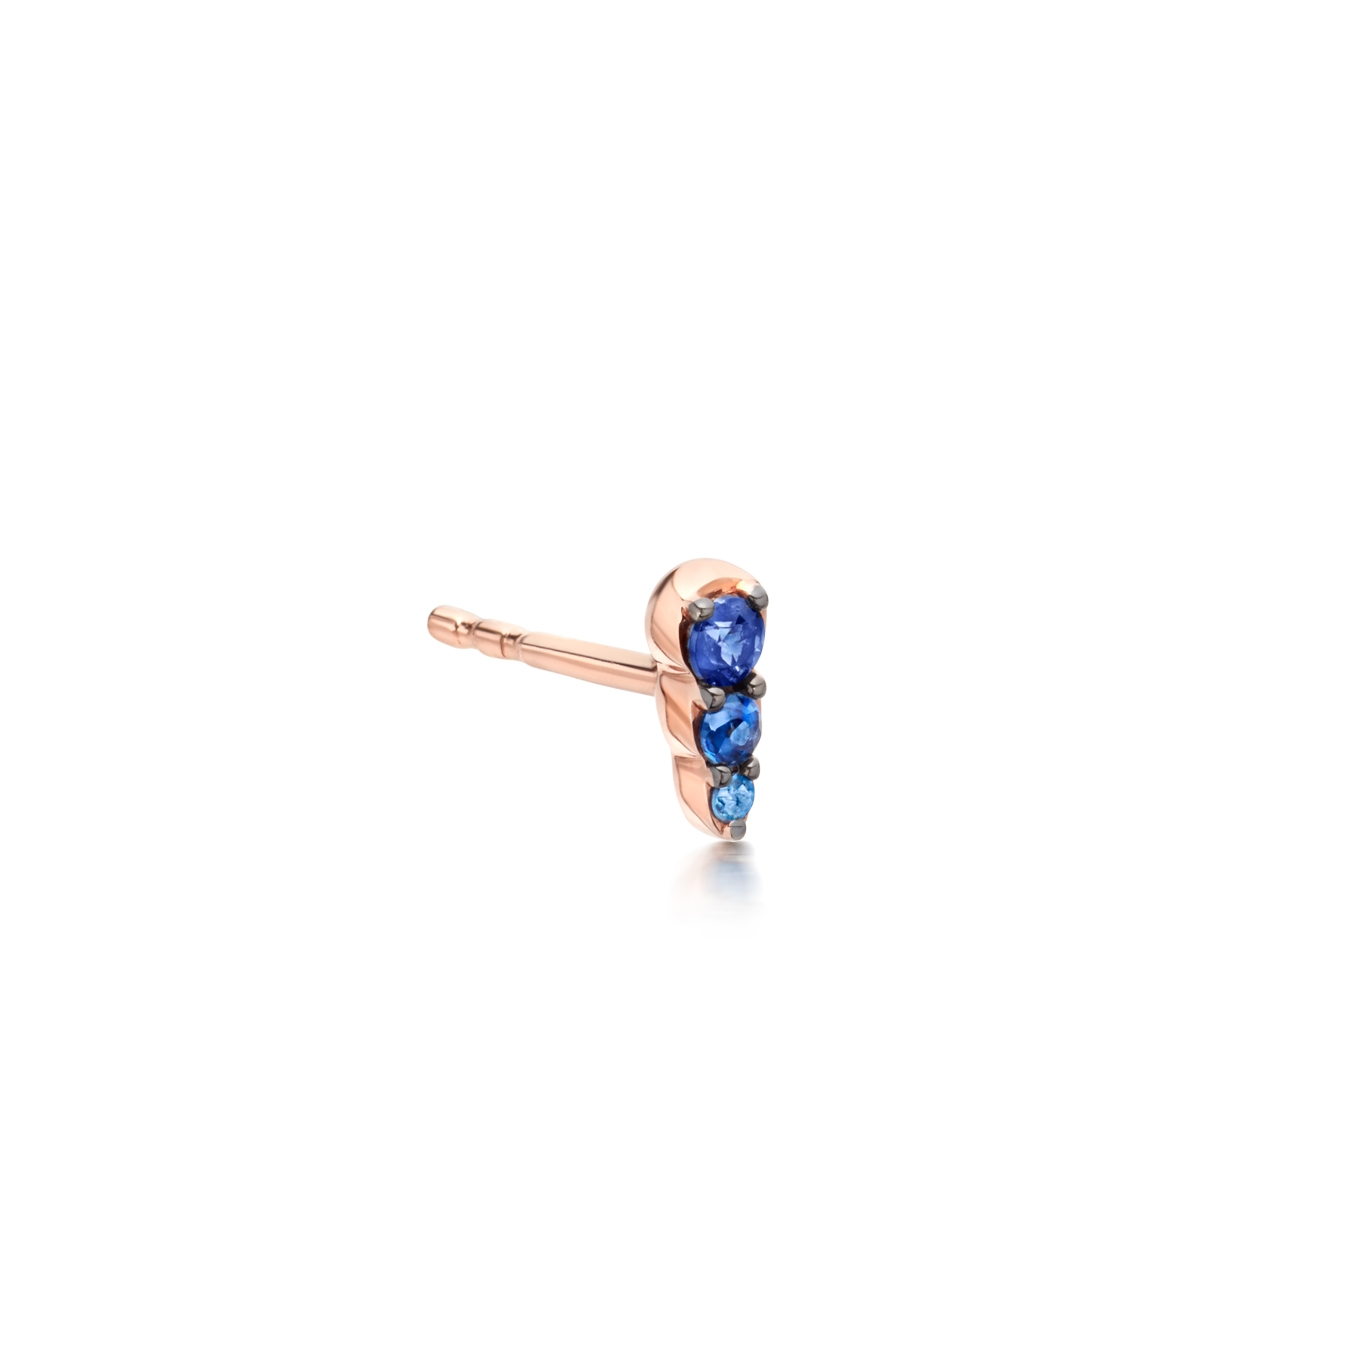 Sapphire Mini Interstellar Single Stud Earring